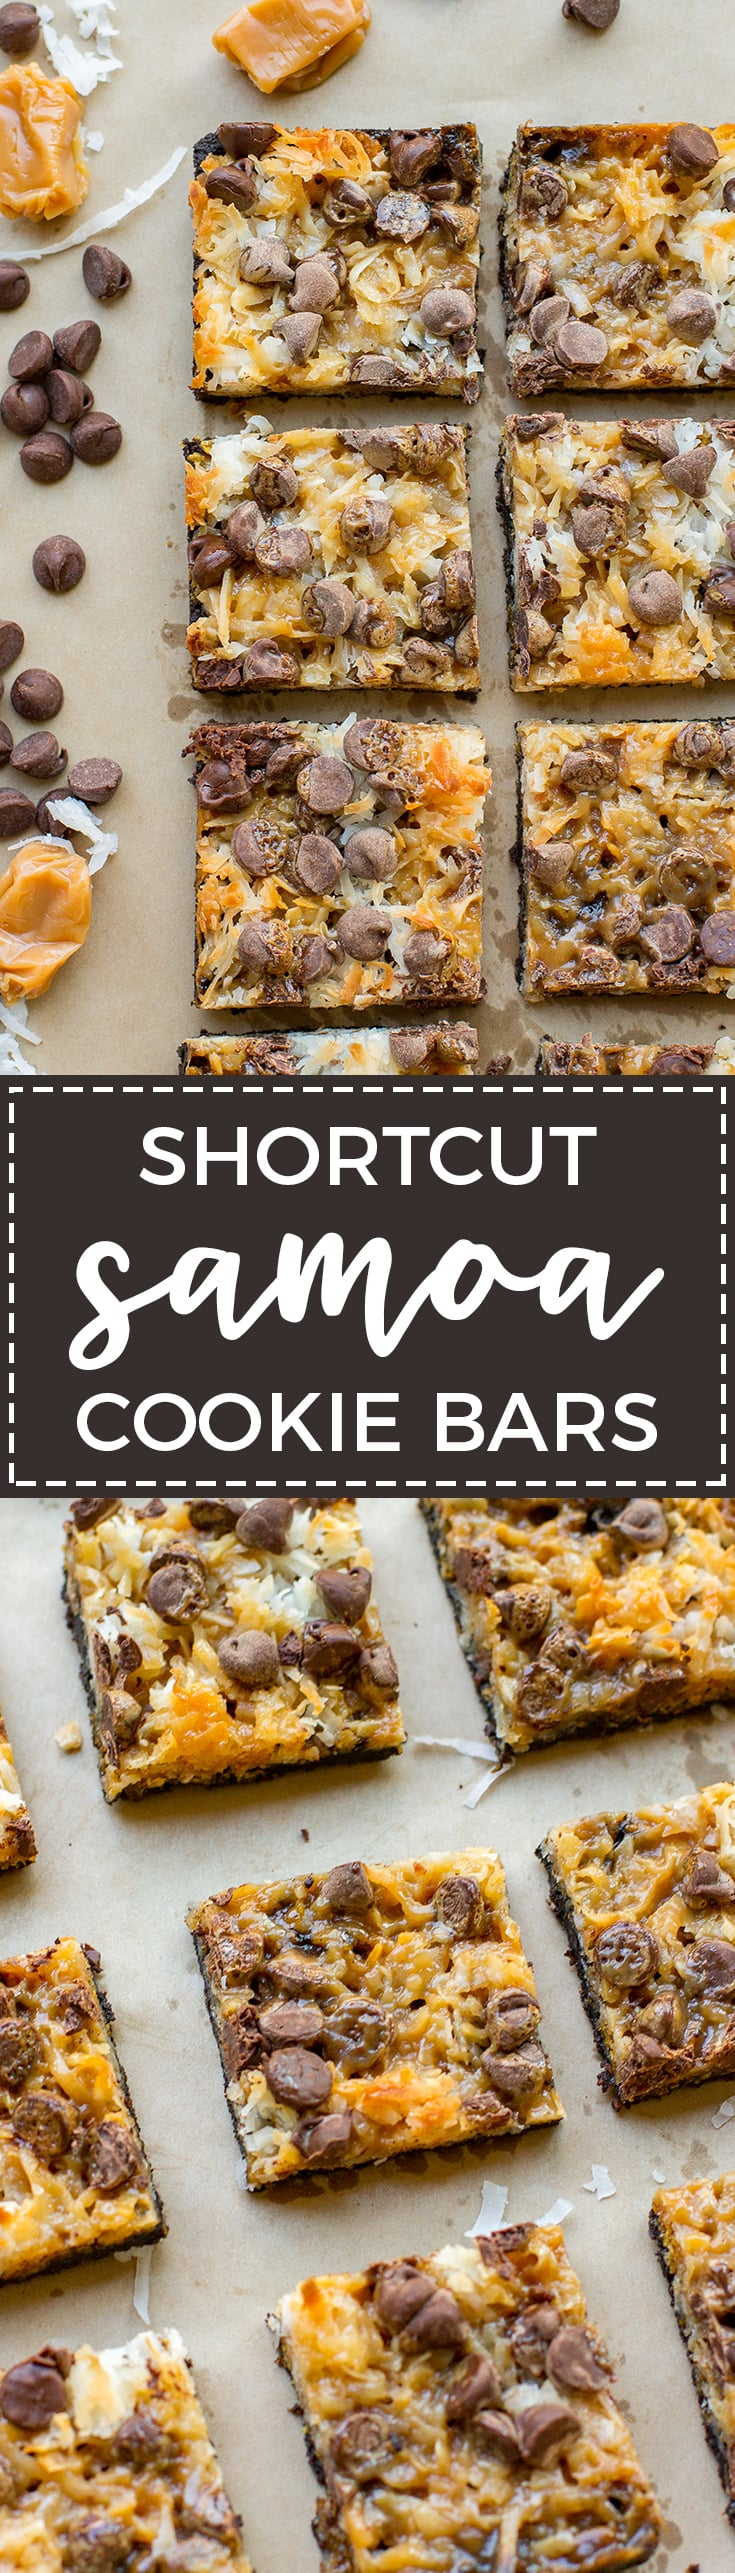 Shortcut Samoa cookie bars | Chocolate chips, salted caramel, sweetened coconut, and an Oreo crust make an easy at-home version of the classic Girl Scout cookie.